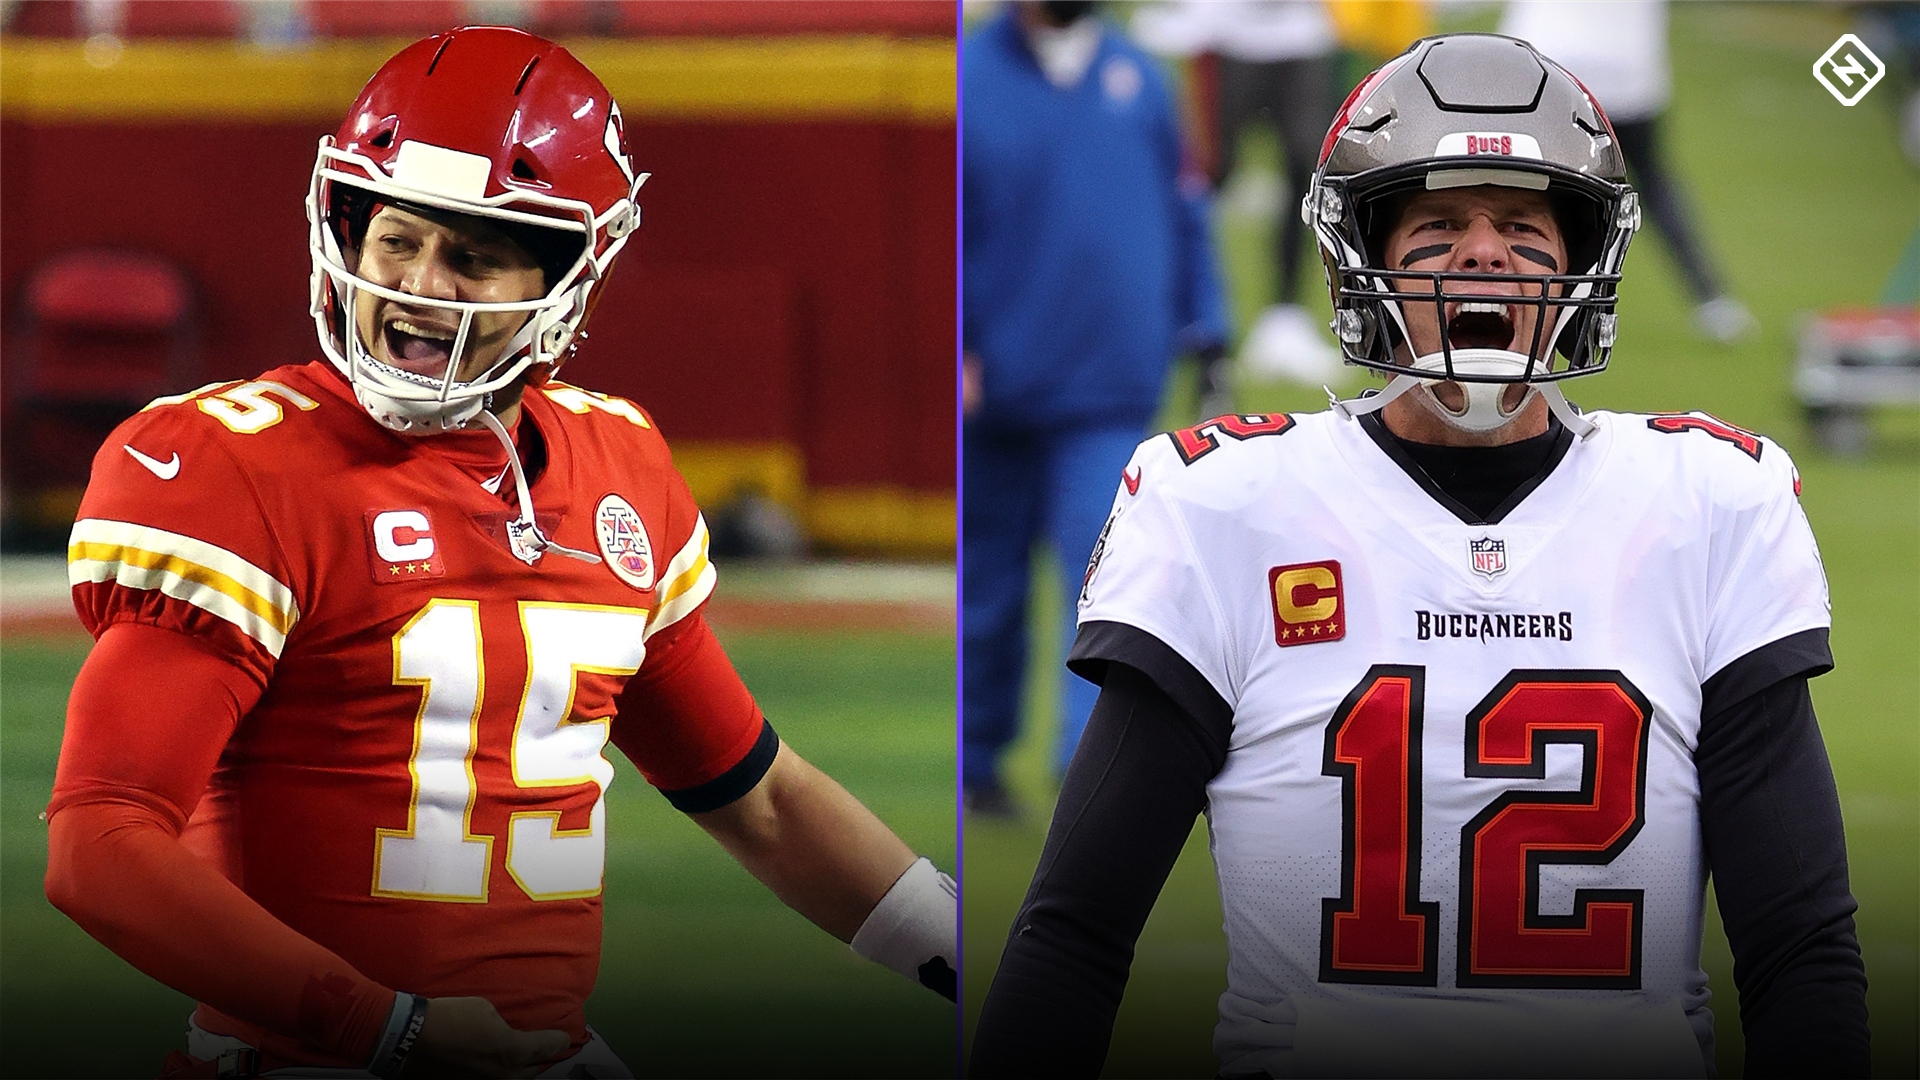 Super Bowl uniforms 2021: What jerseys will Chiefs, Buccaneers ...